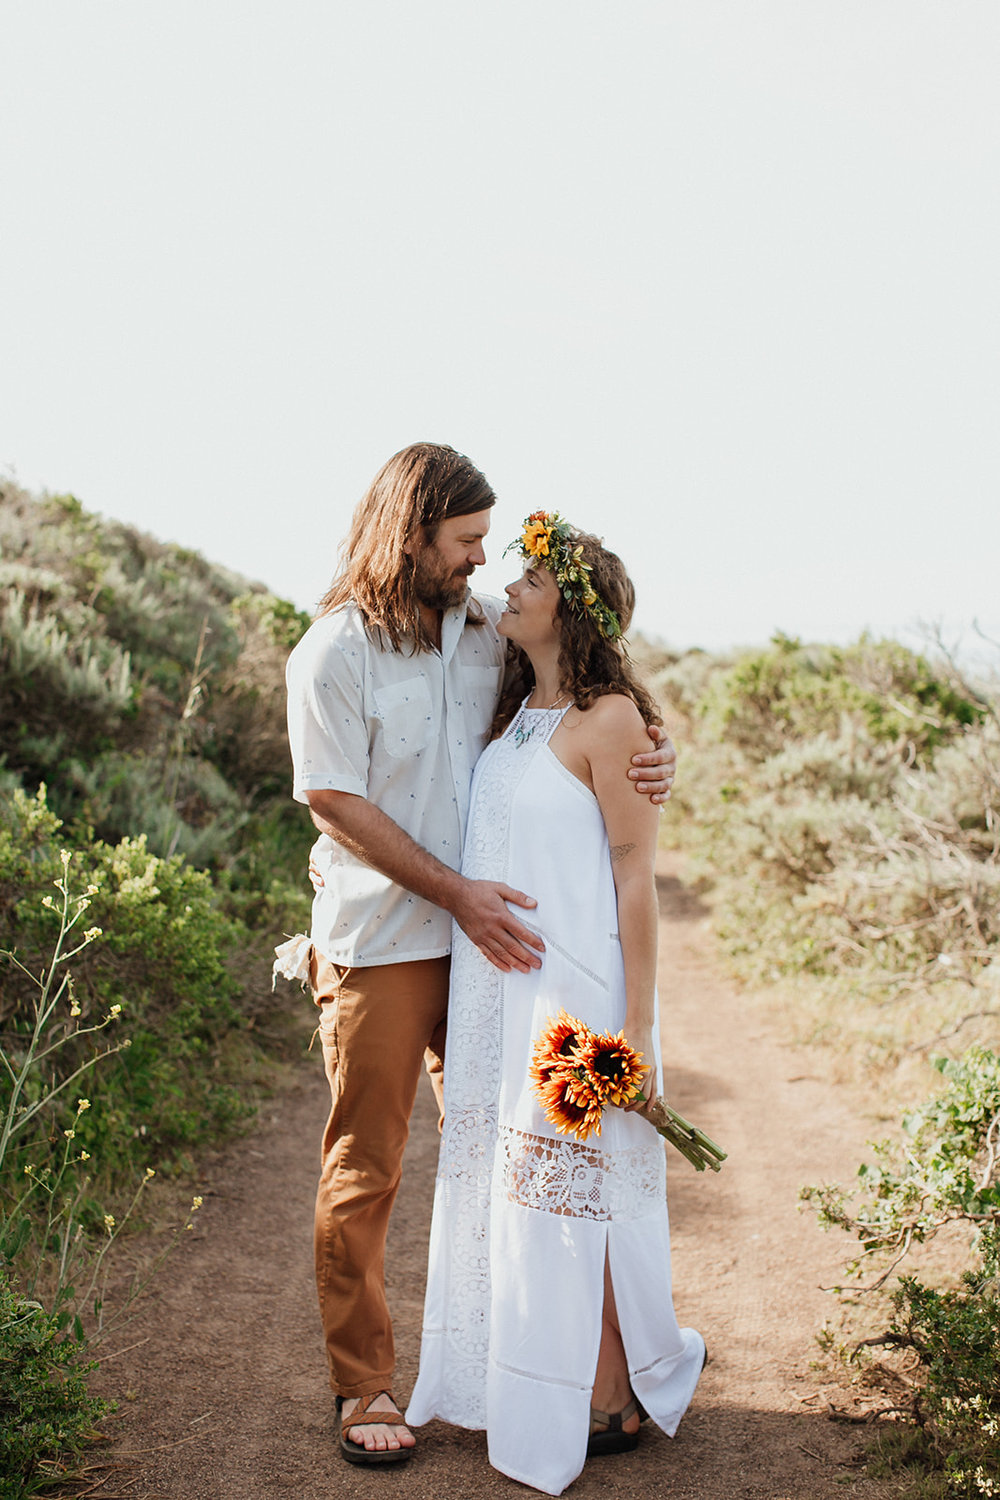 marin-headlands-wedding-marble-rye-photography-050418-229.jpg